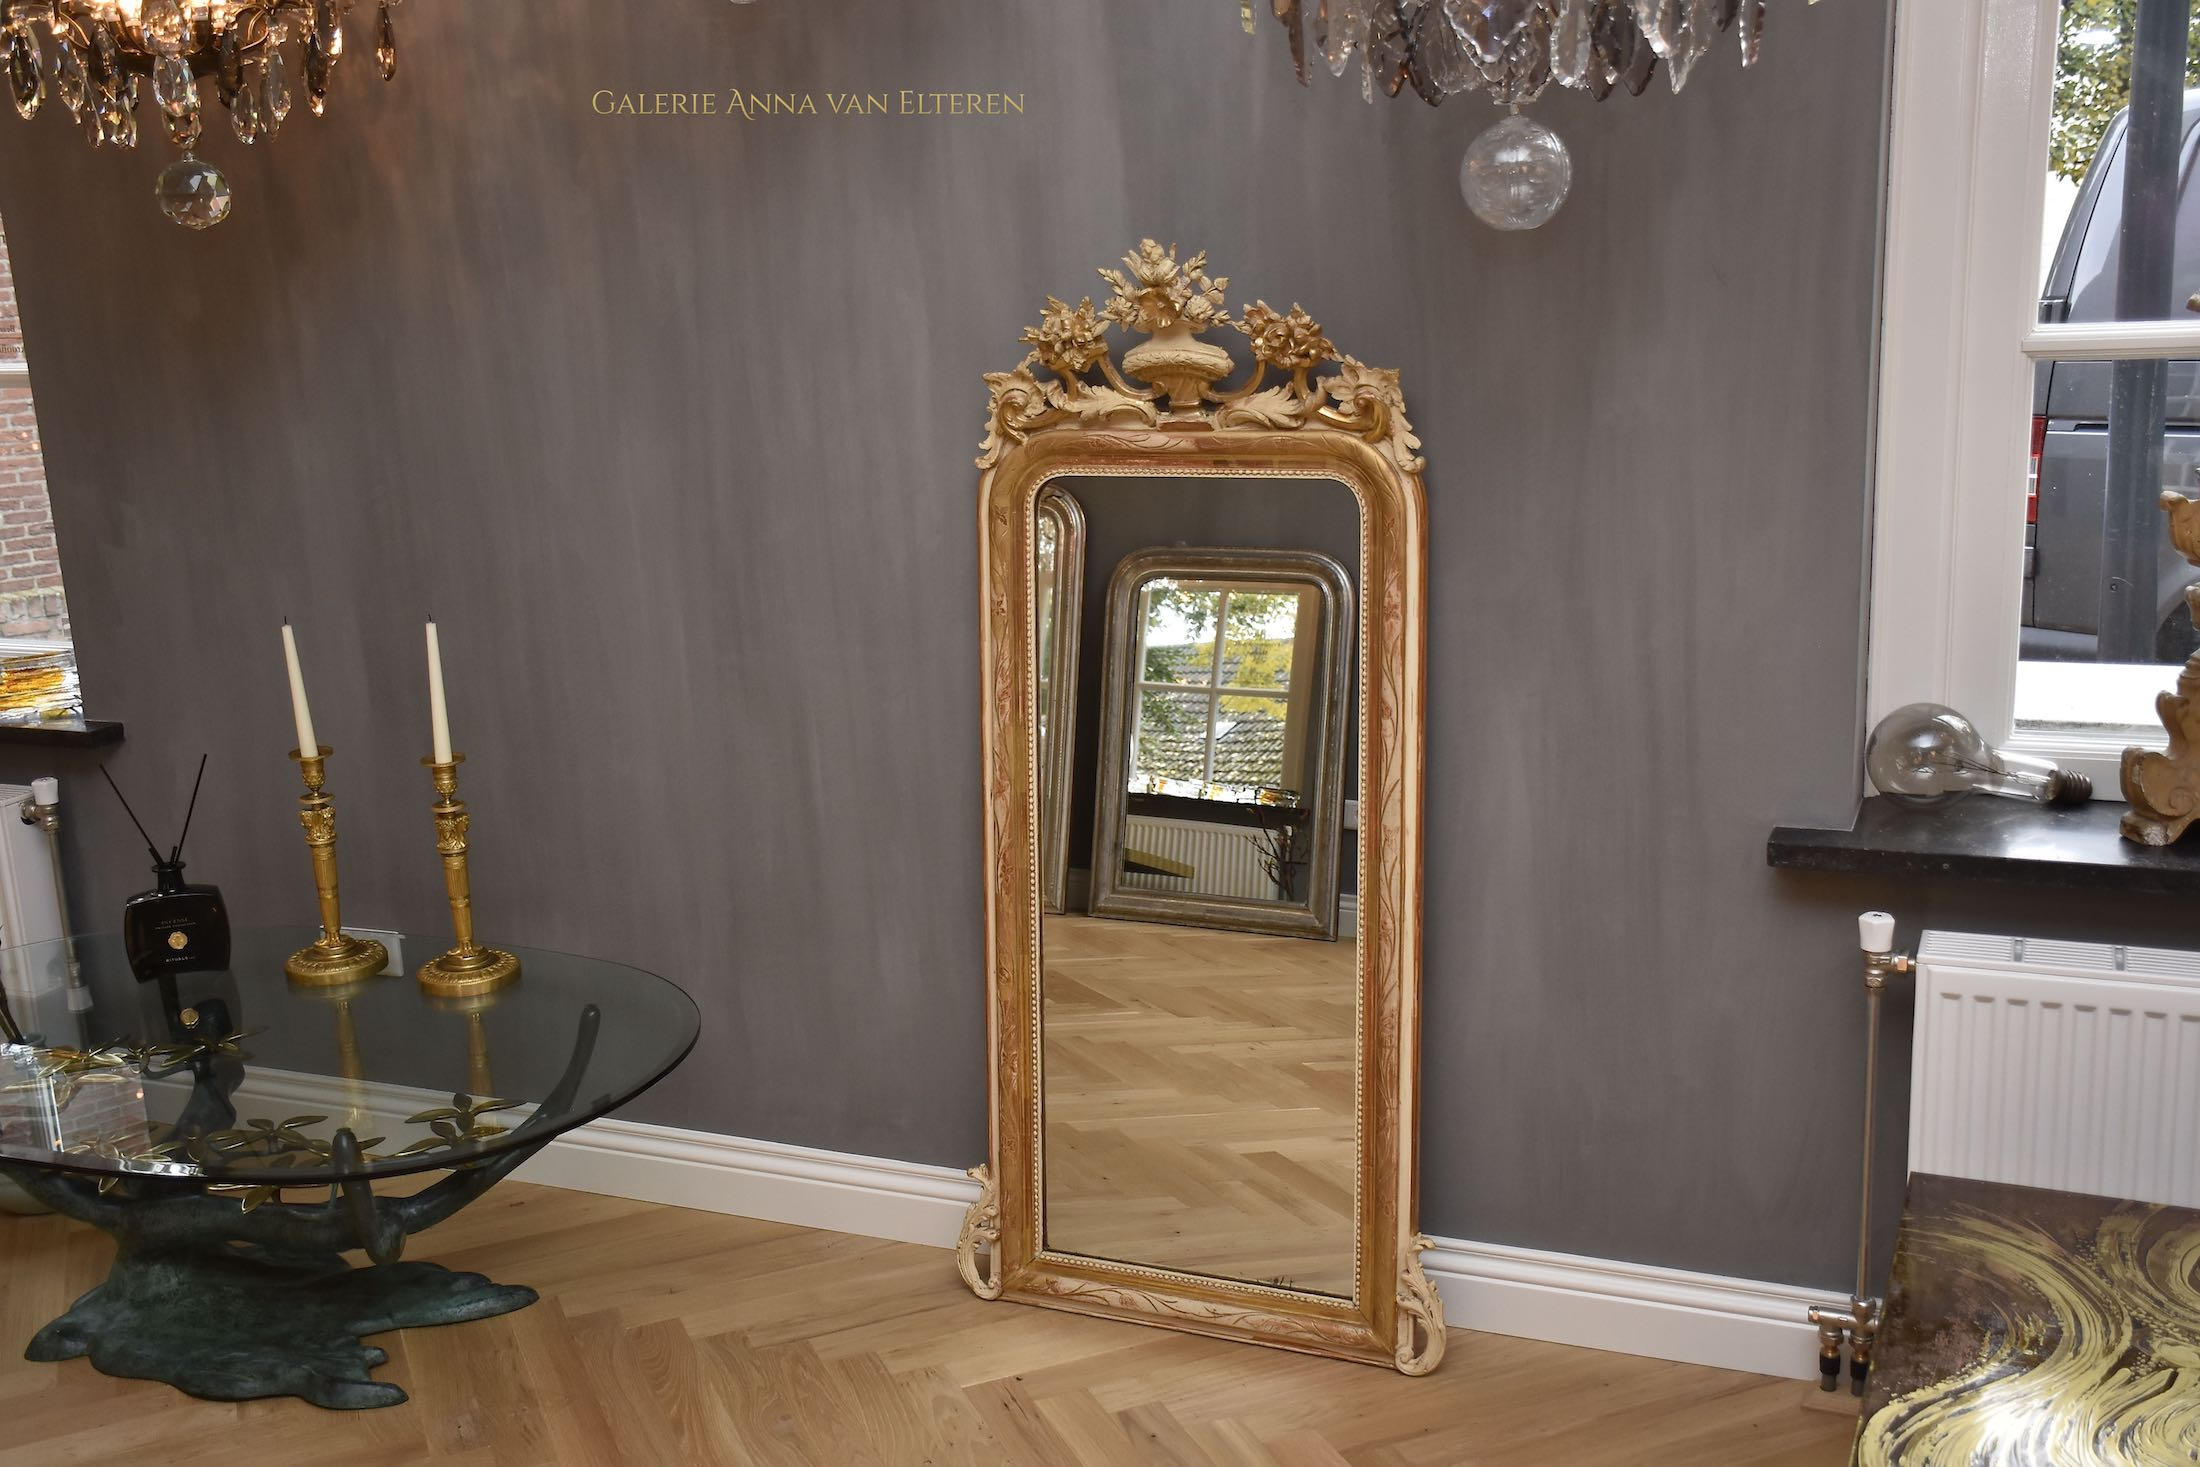 19th c. antique French mirror with a crest